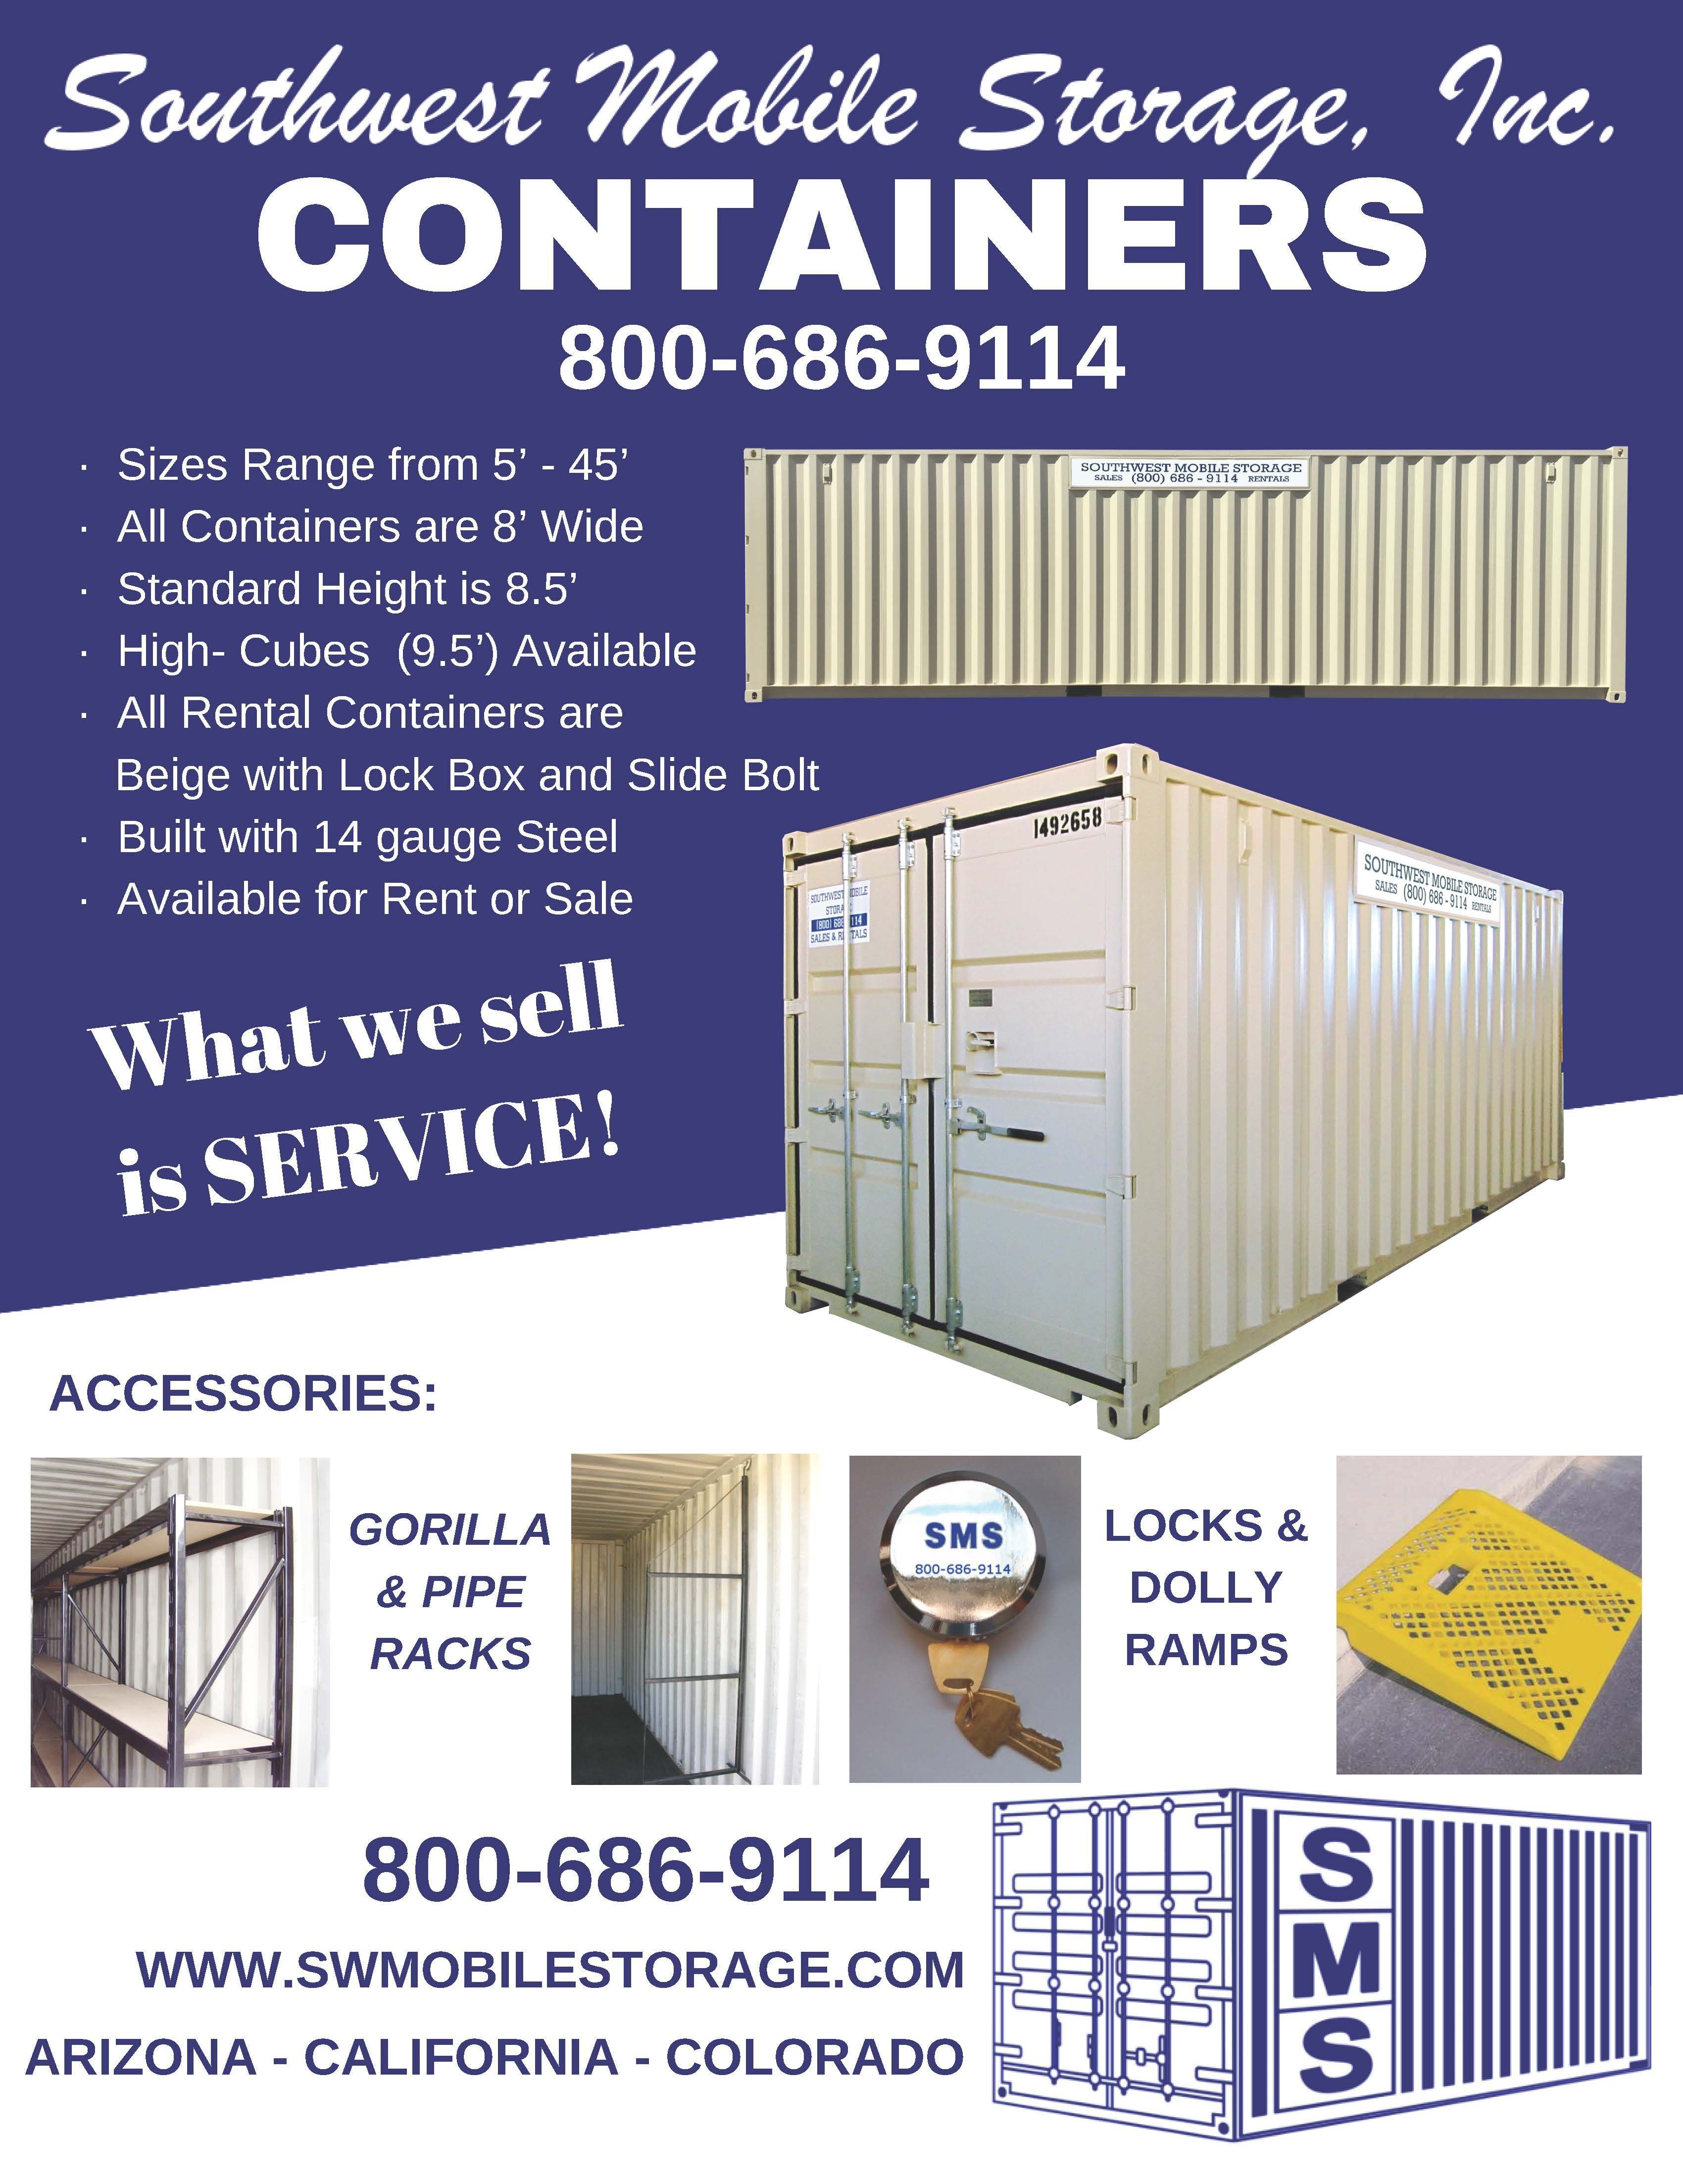 Southwest Mobile Storage Containers Mobile Storage Storage Rental Storage